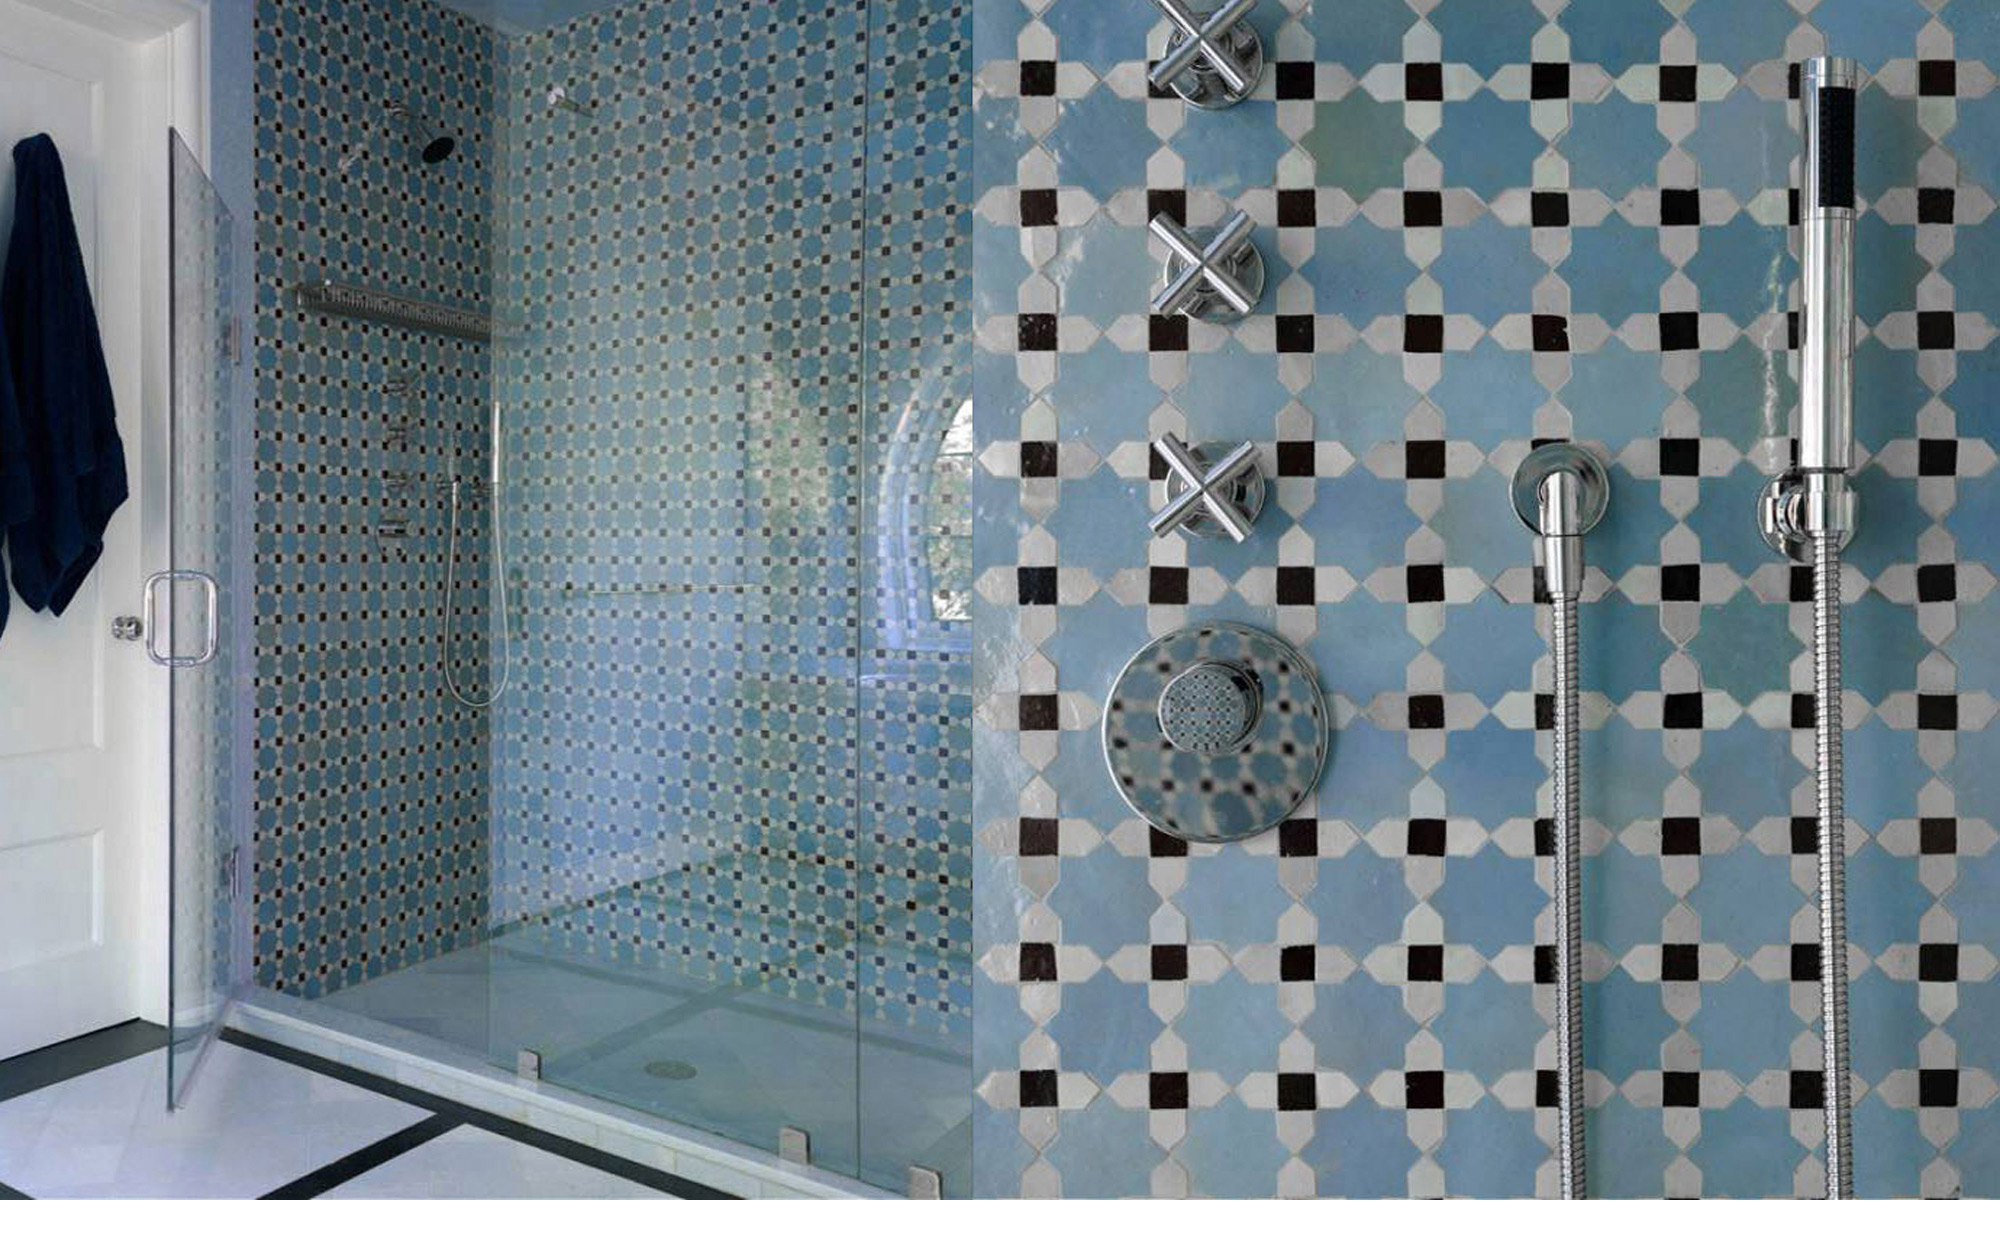 Chic moroccan tile for floor decor ideas with moroccan tile backsplash